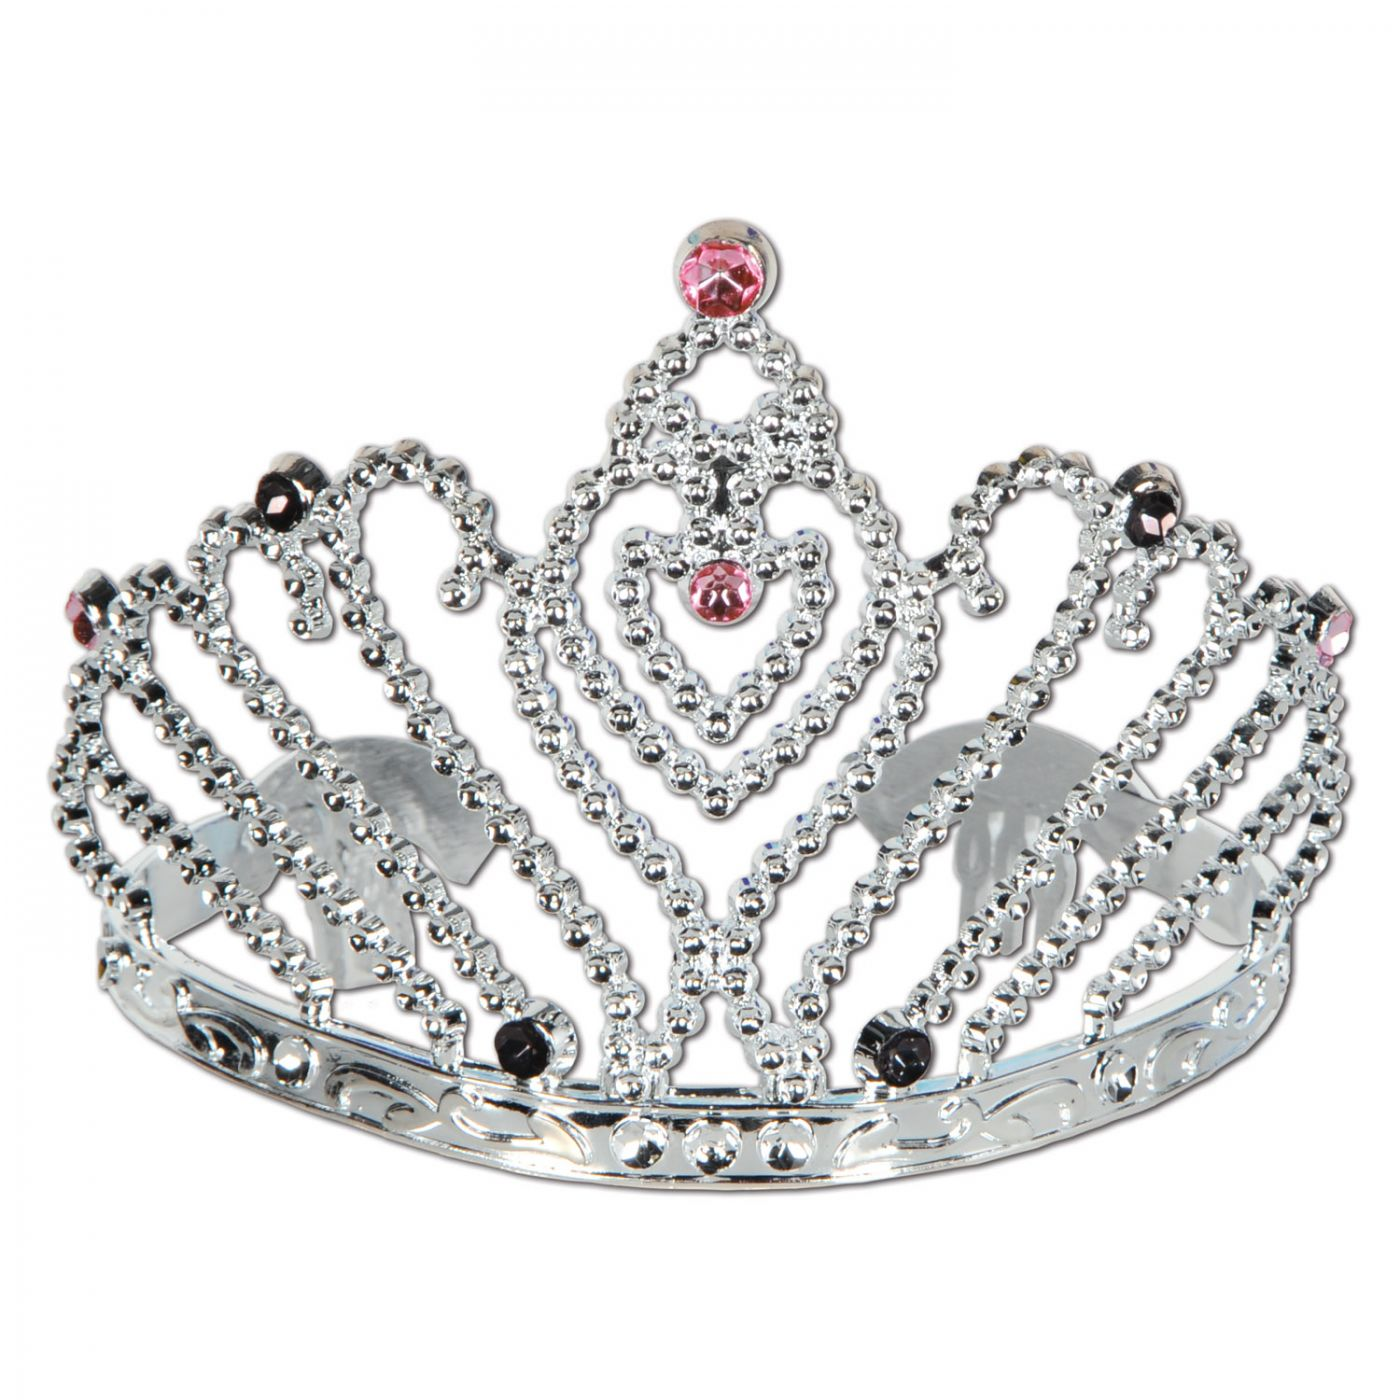 Plastic Bachelorette Party Tiara image